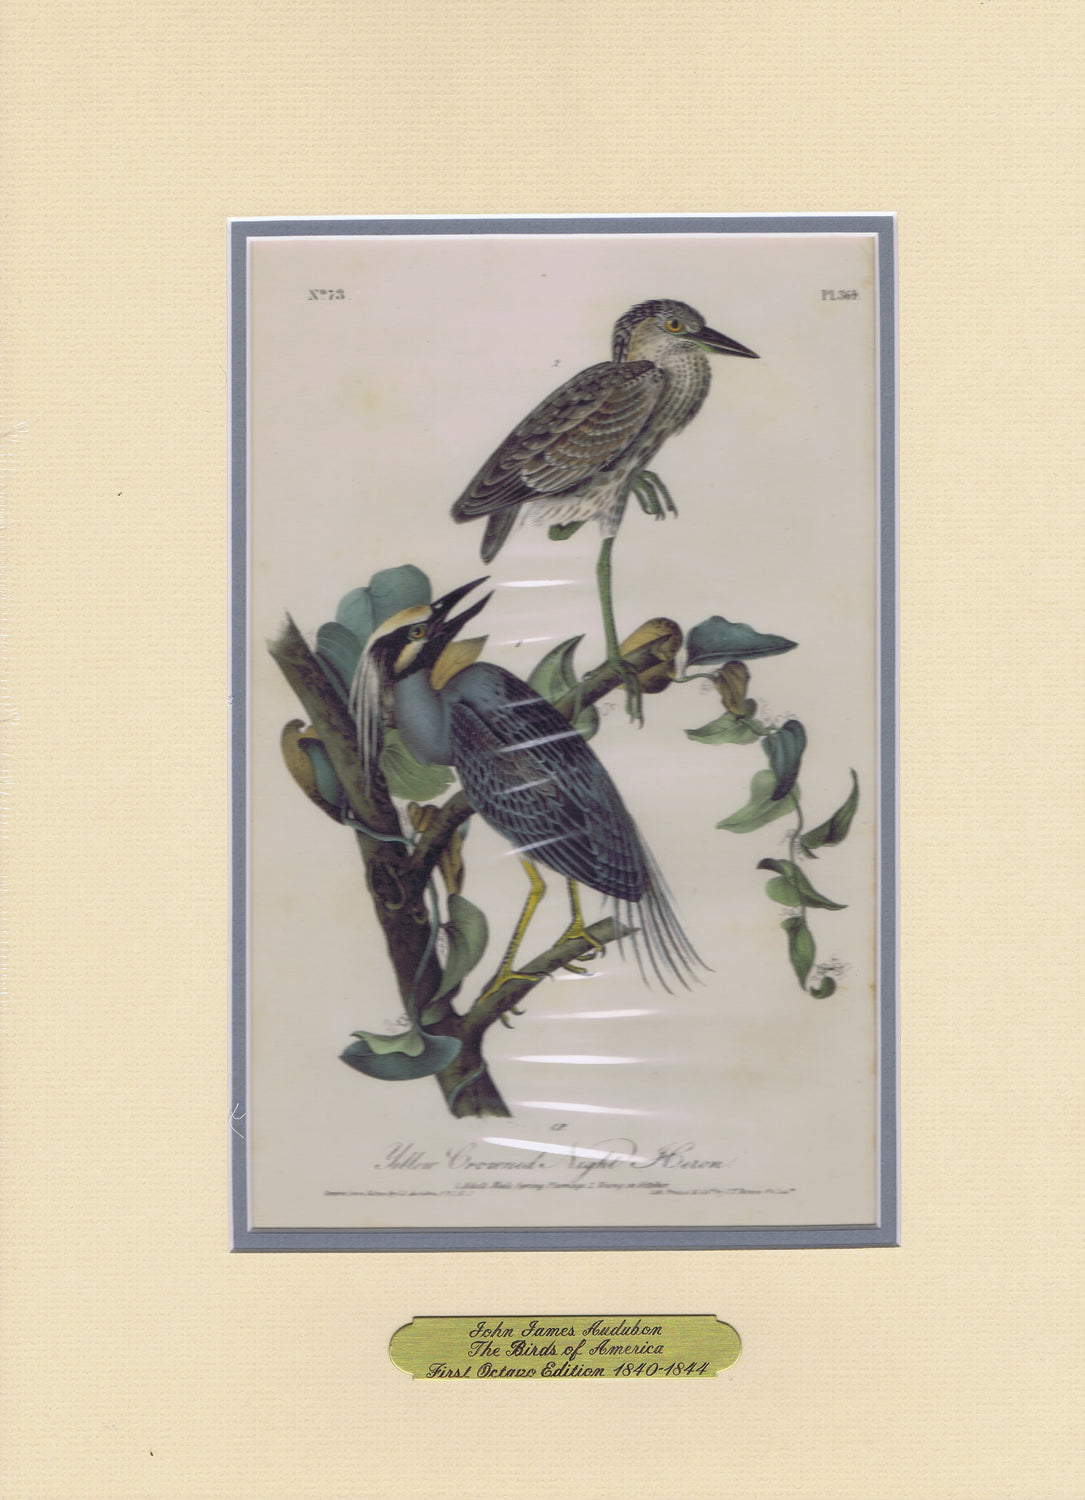 Audubon Original Octavo Matted, Yellow-crowned Heron, plate 364